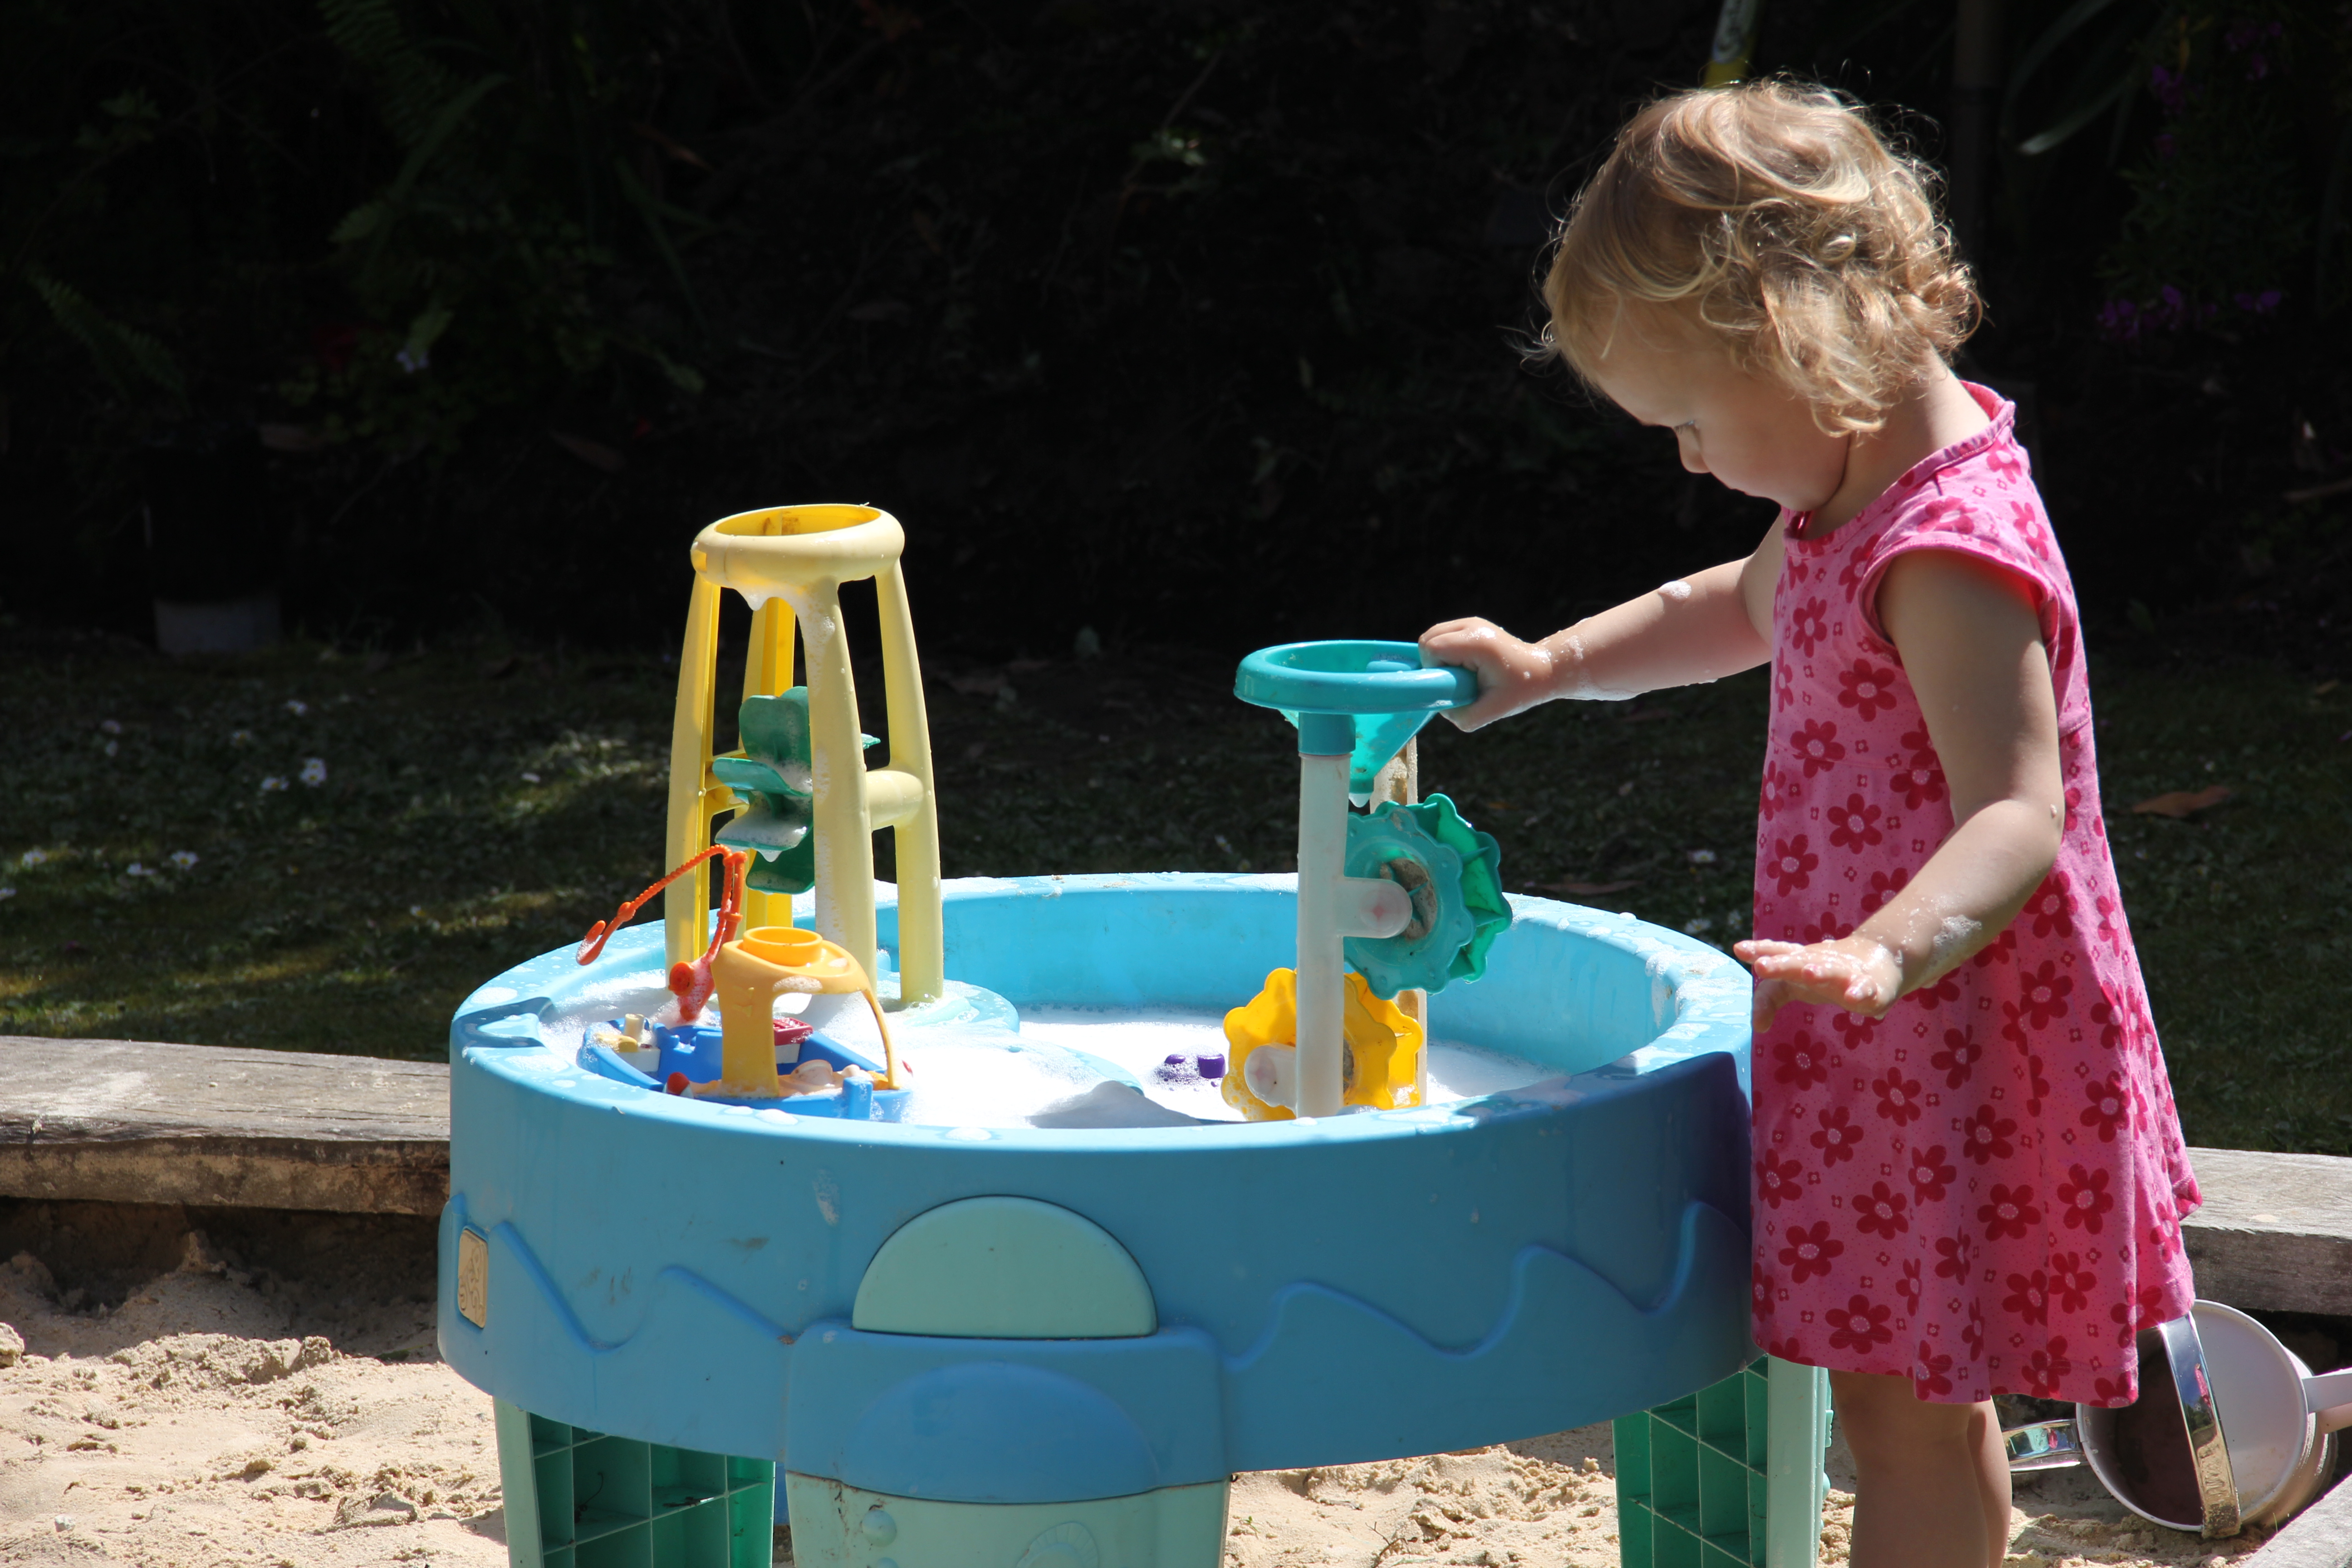 The Top 5 Toys for Girls that Go the Distance Style & Shenanigans